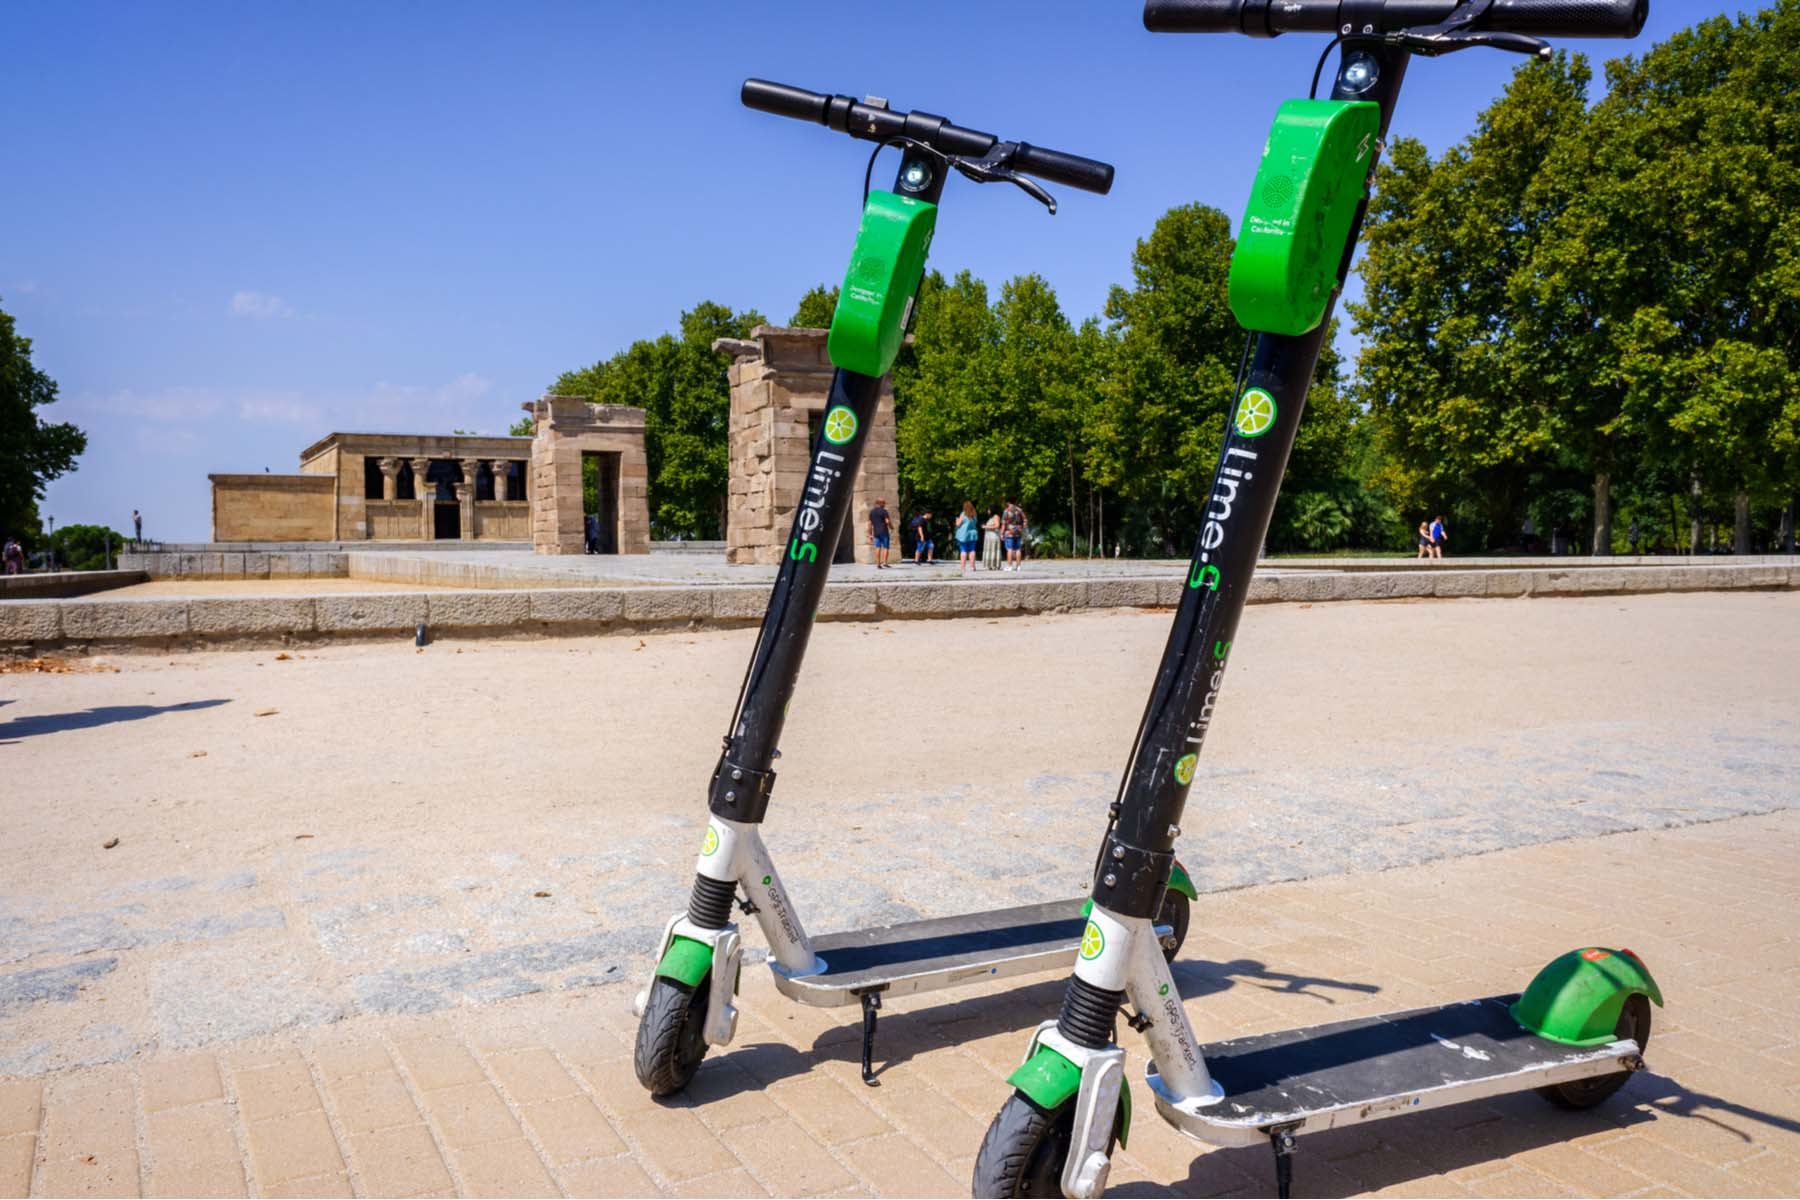 lime scooters Madrid